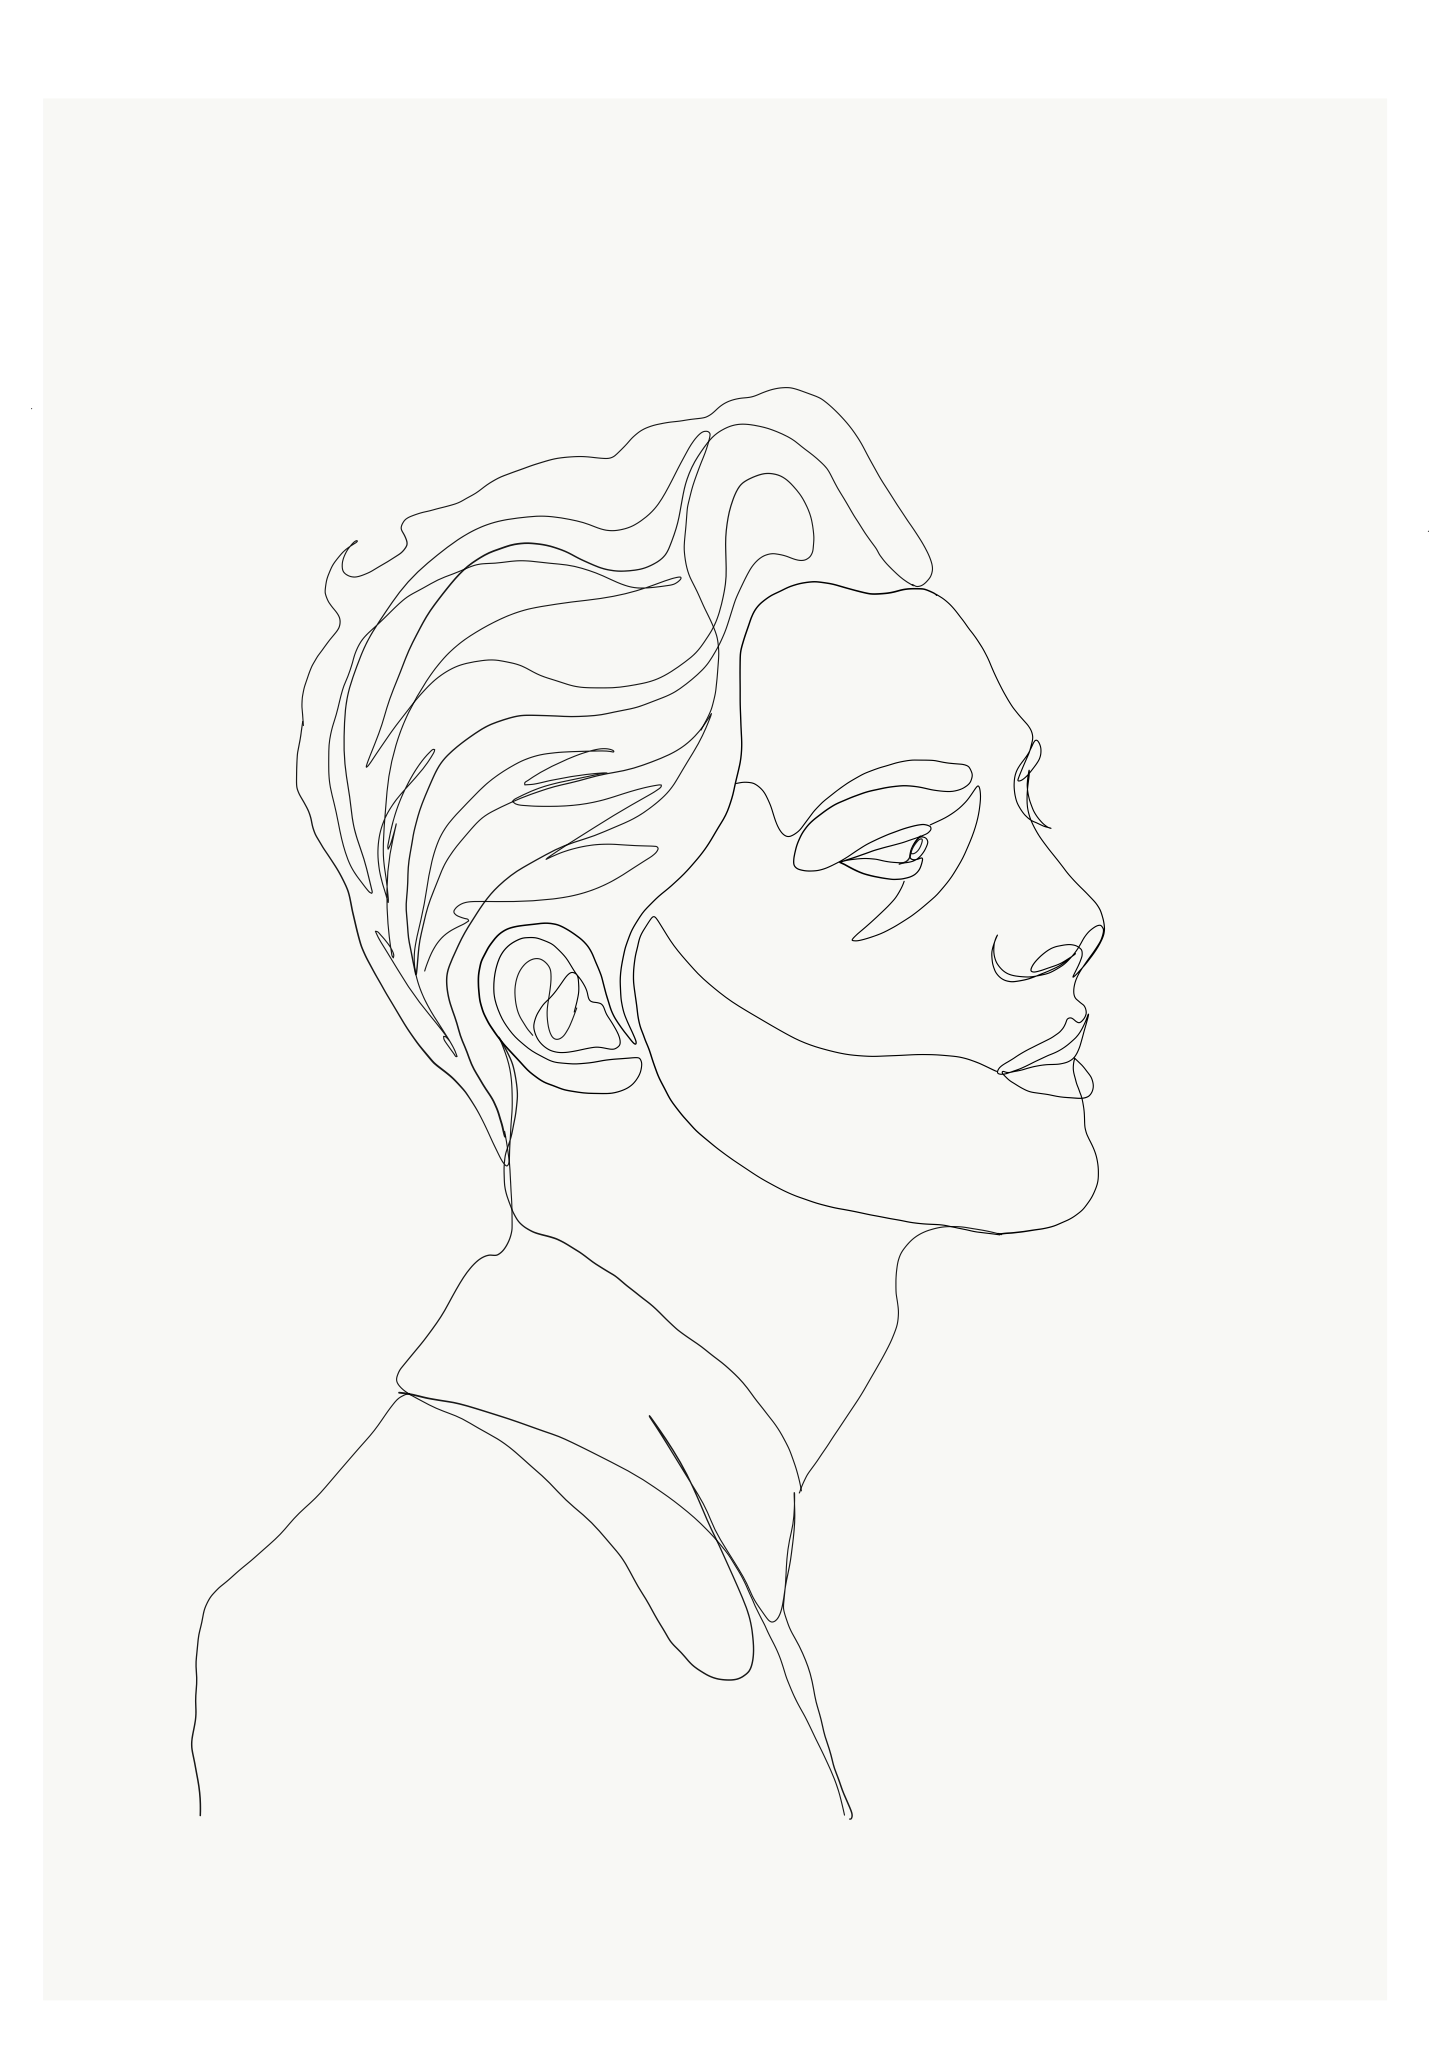 Line Drawing Of Face Profile : Emma ryan single line drawing mans face profile